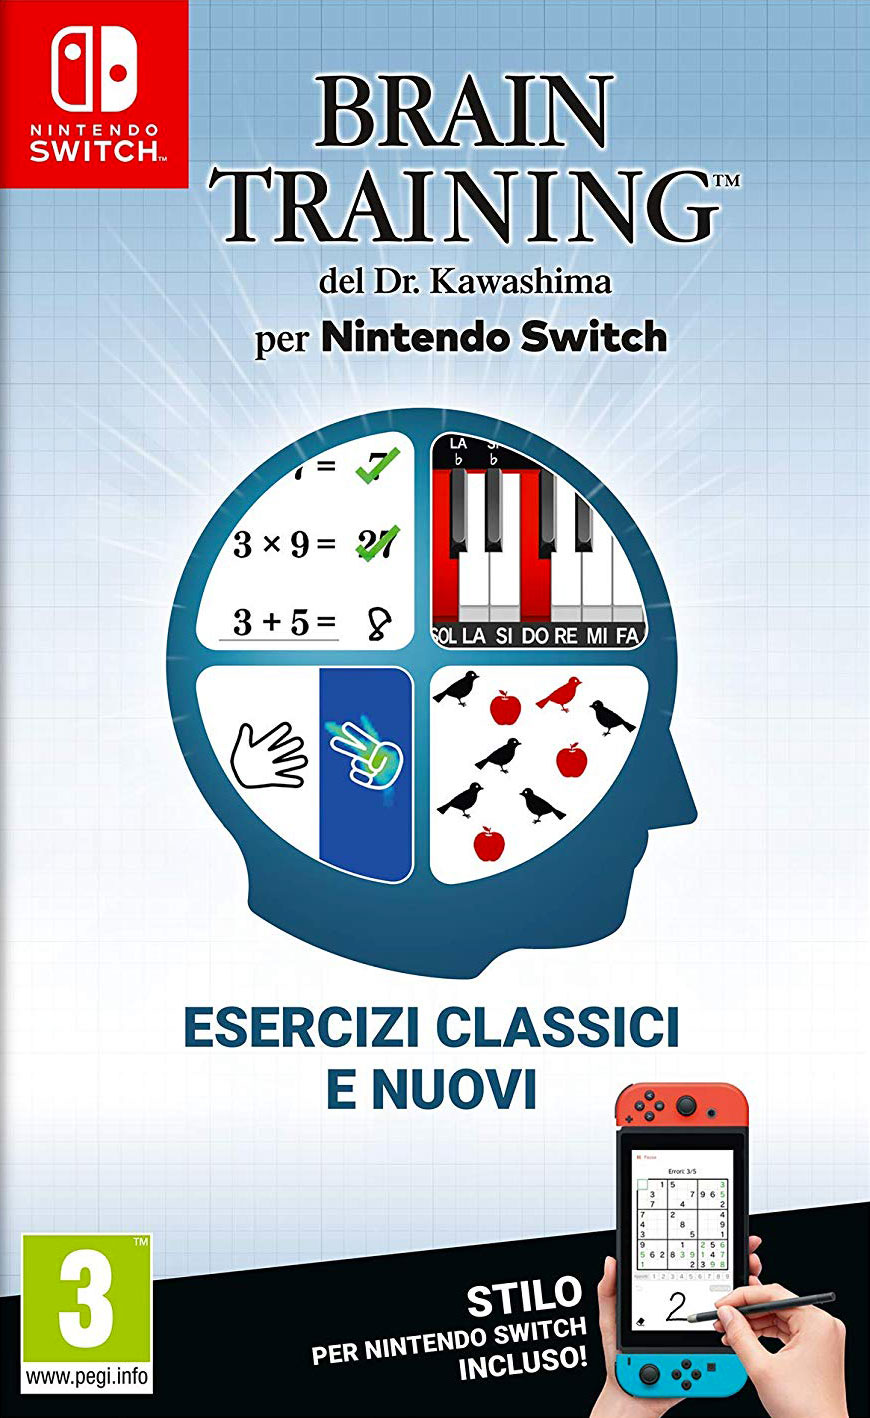 Brain Training del Dr. Kawashima per Nintendo Switch - Recensione